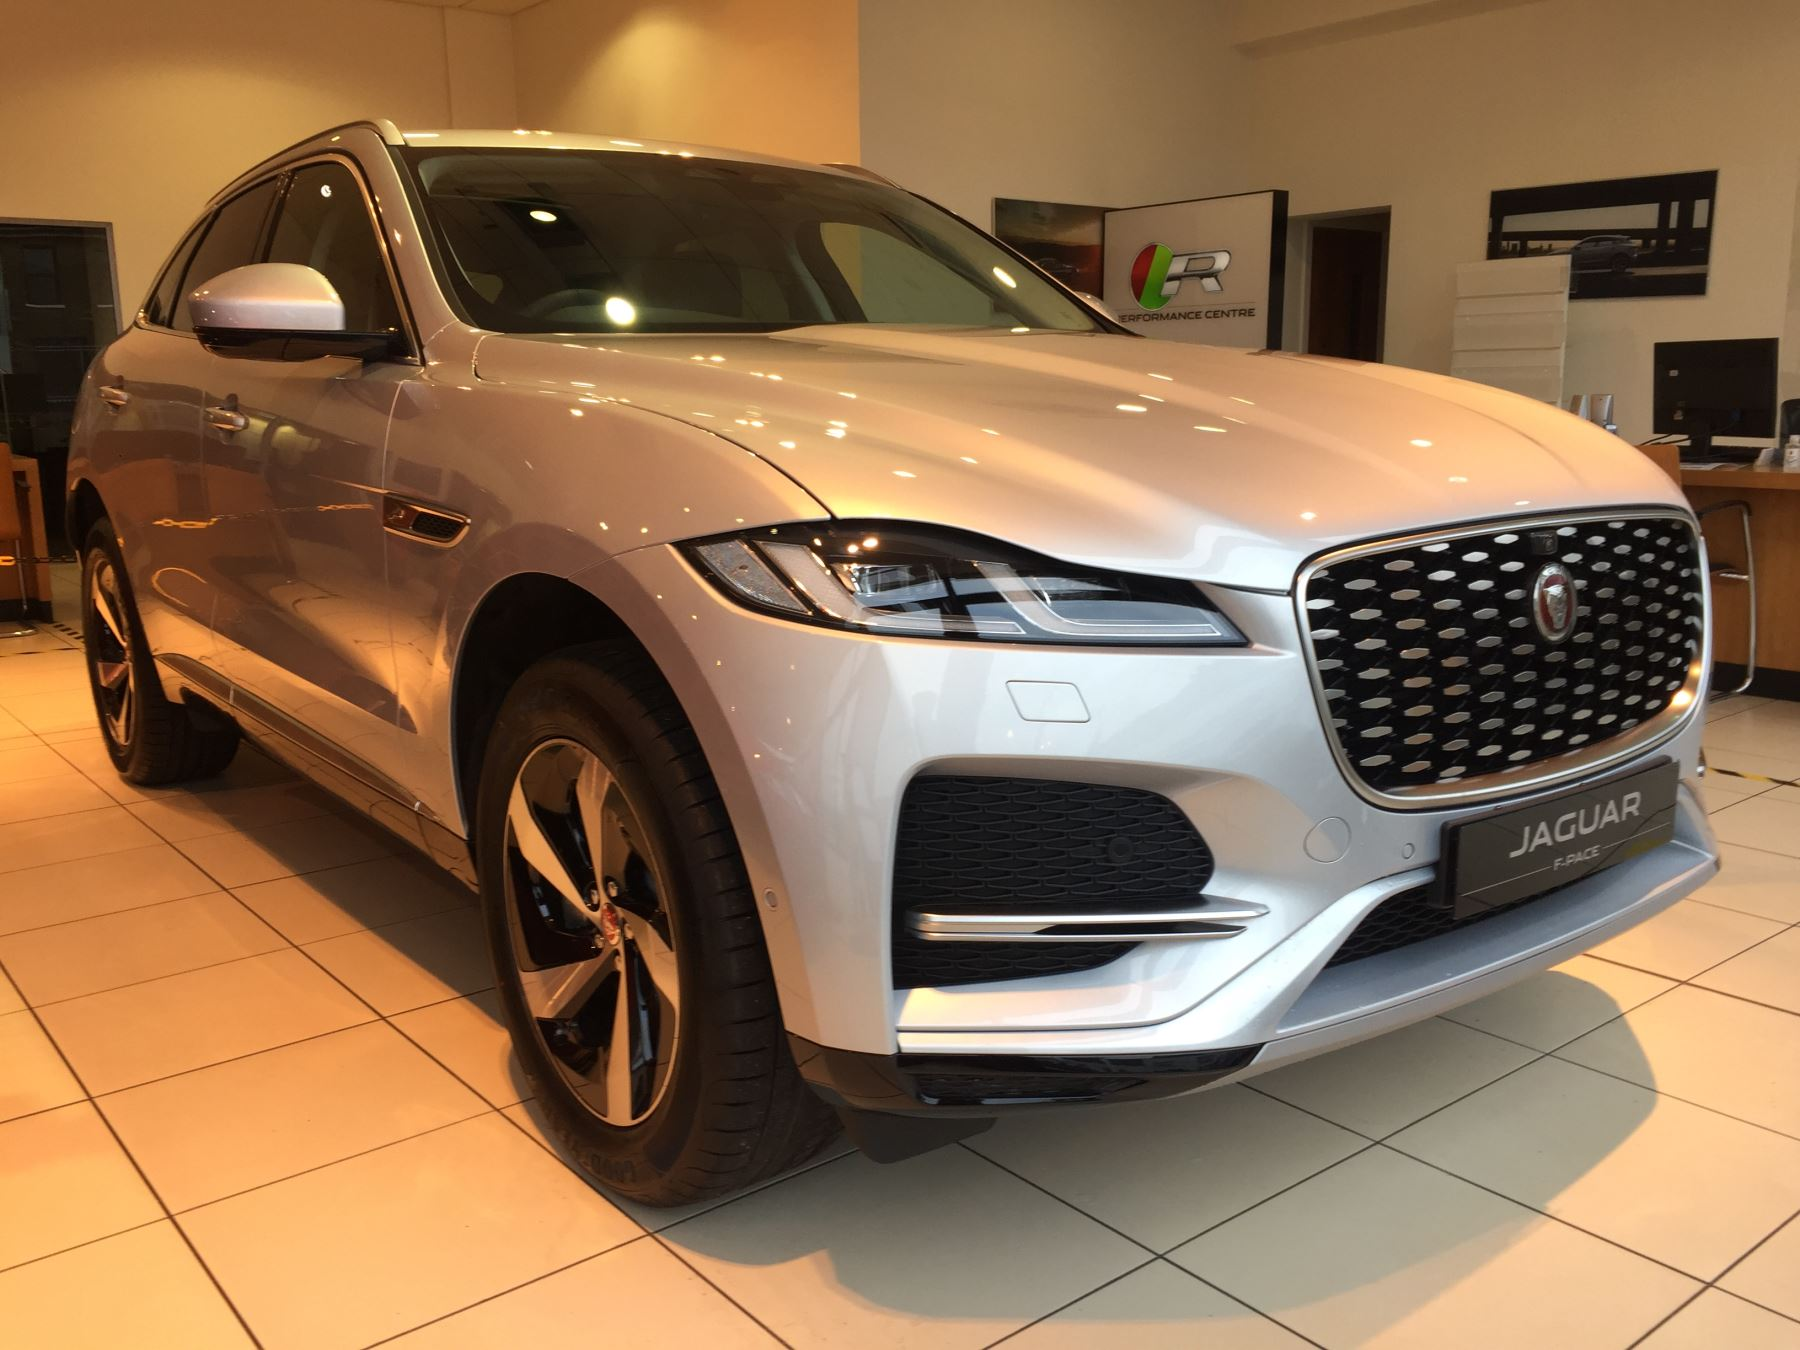 Jaguar F-PACE Stock cars available Immediately with all models available for early delivery.  2.0 Diesel Automatic 5 door 4x4